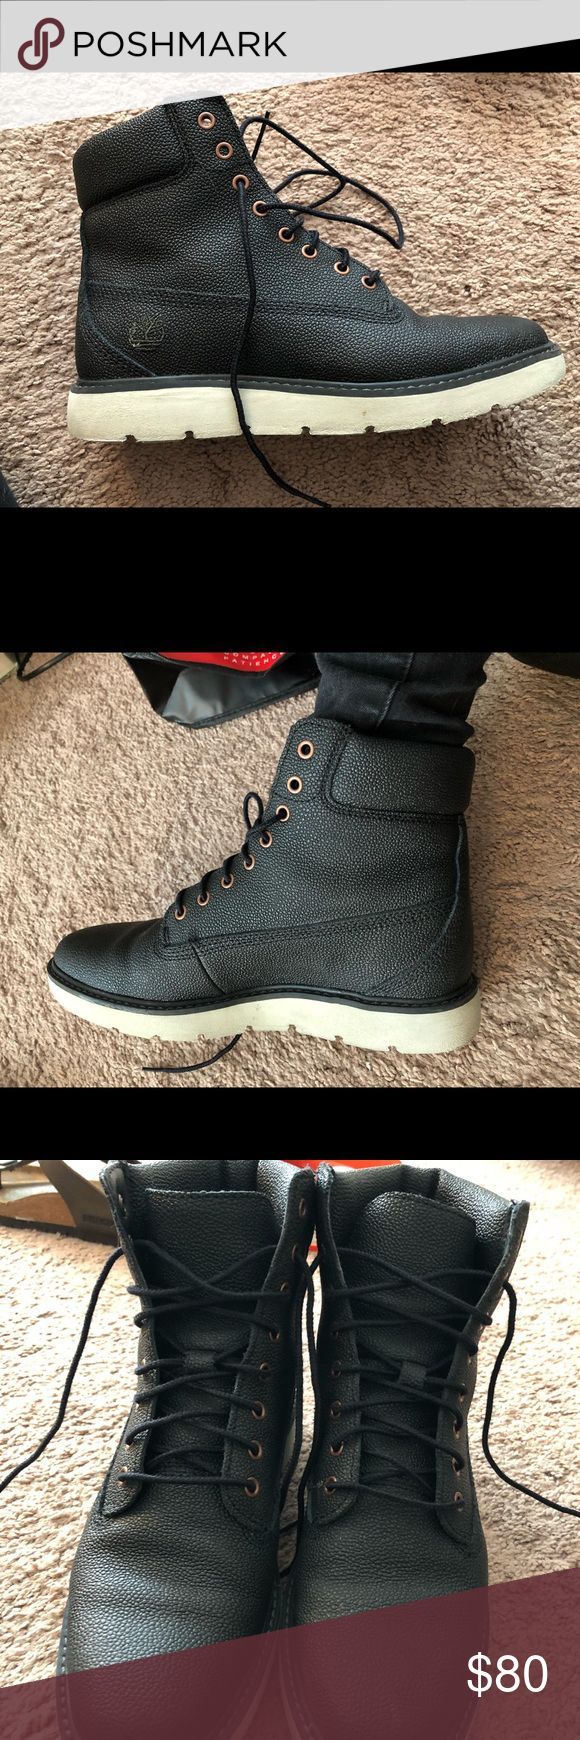 Black leather Timberlands Black leather lace up timberland boots. About a year old. Not super worn. Still in excellent condition aside from the bottoms being dirty. Timberland Shoes Lace Up Boots